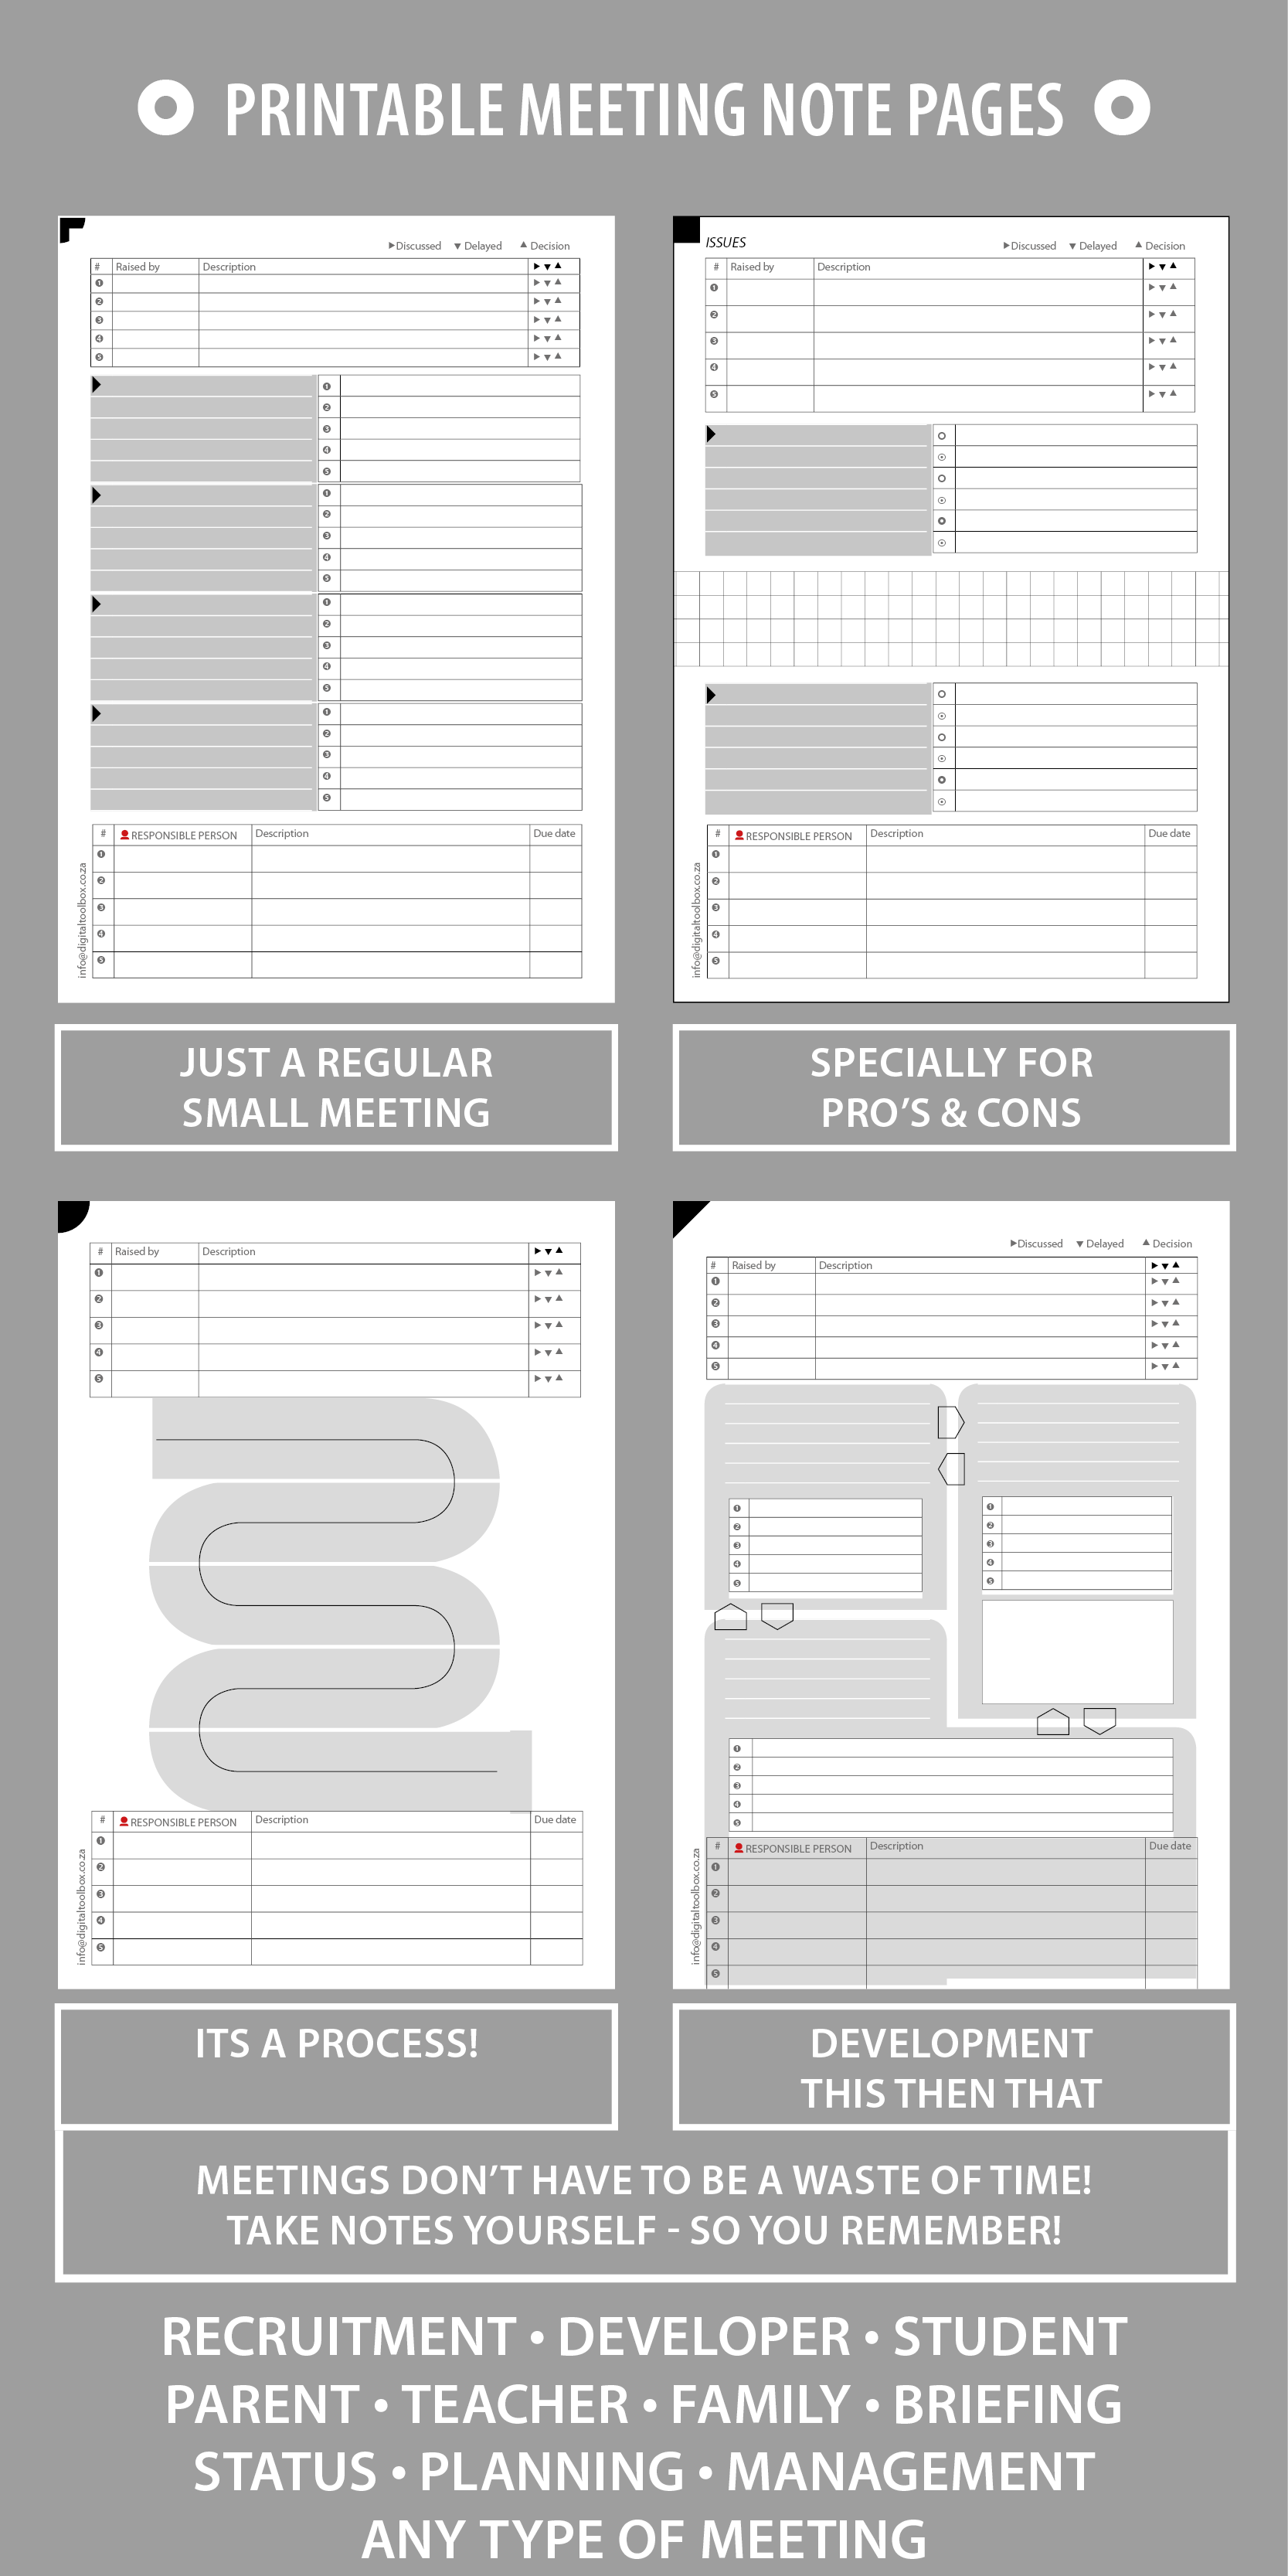 PRINTABLE Meeting Notes, Agenda/Record for Small